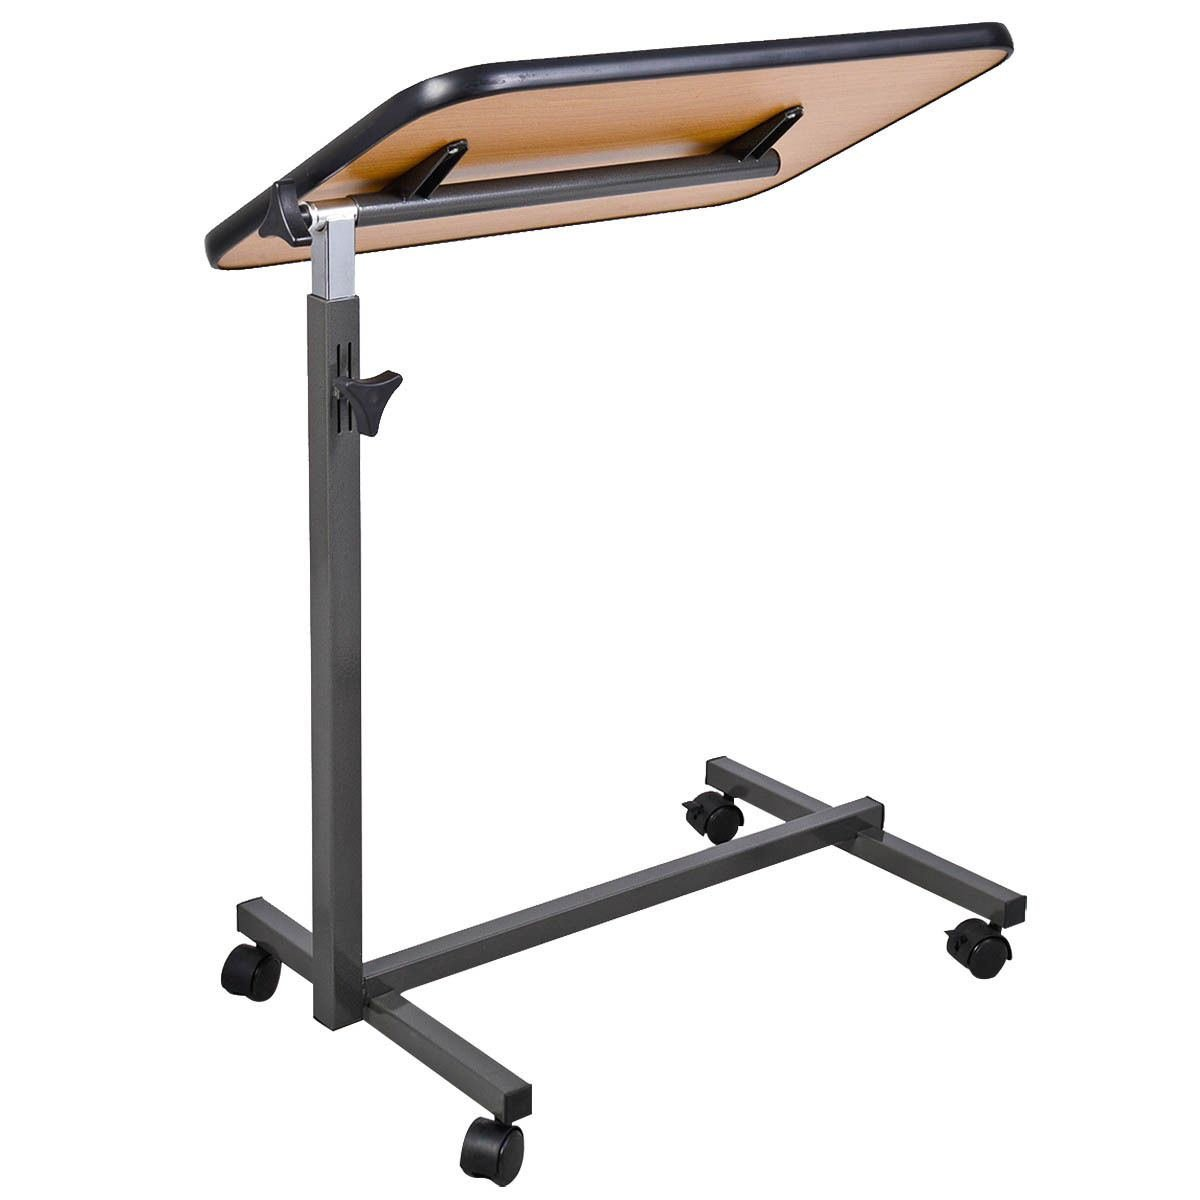 Overbed table food tray non tilt top bed hospital adjustable rolling - Amazon Com Overbed Laptop Food Tray Table Rolling Desk Hospital Over Bed With Tilting Top Kitchen Dining